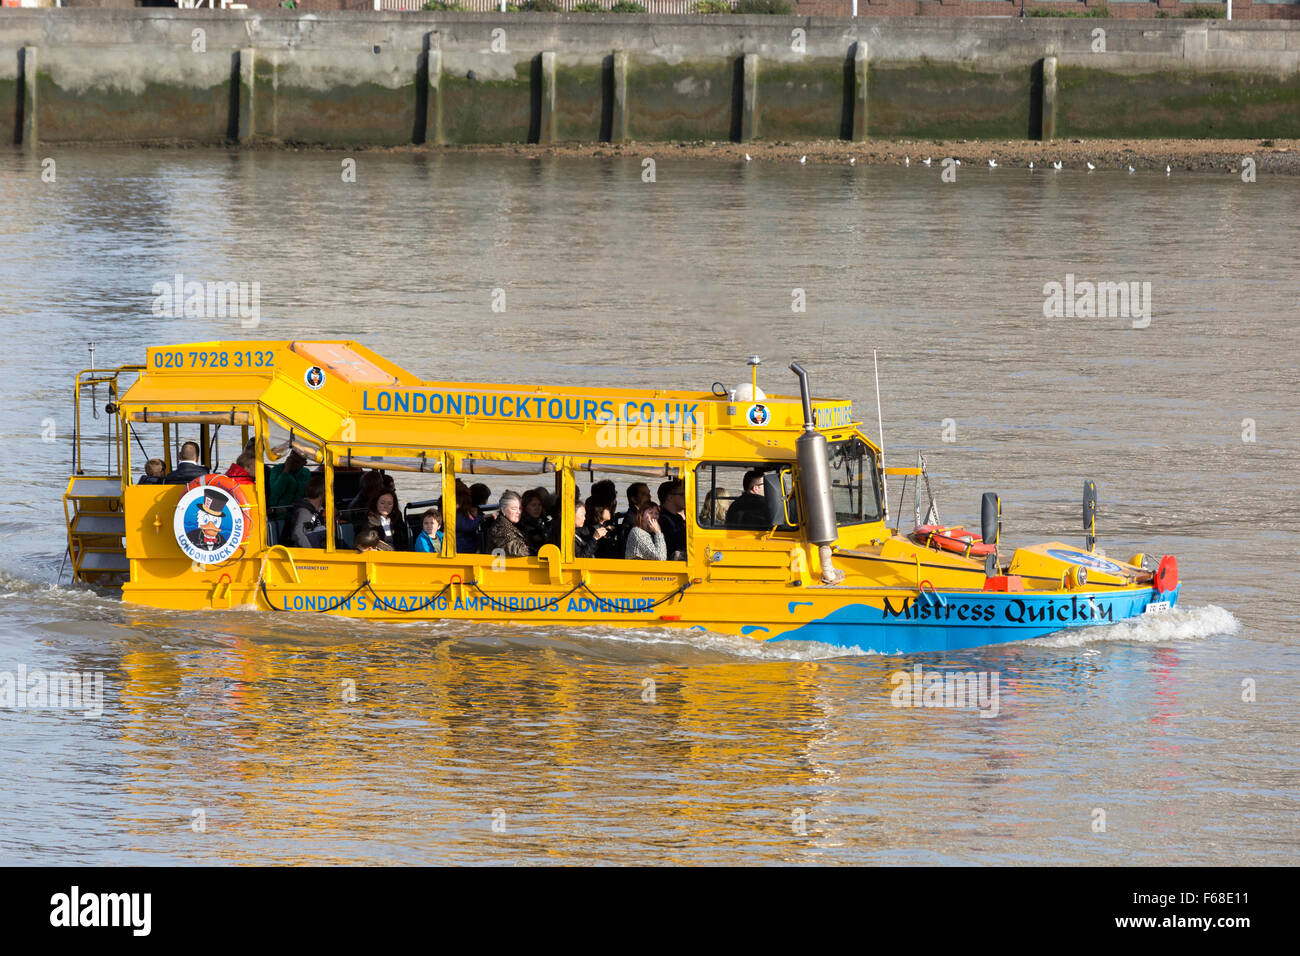 London Duck Tours amphibious vehicle on the river Thames, Lambeth, London - Stock Image